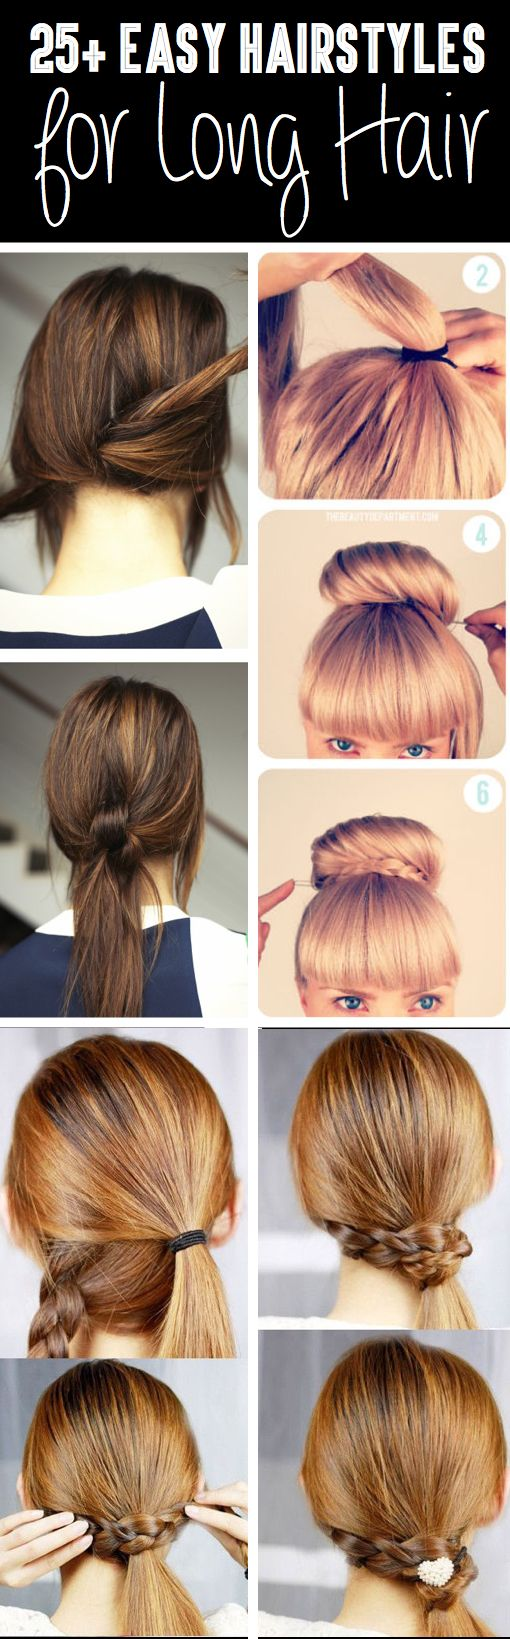 Fantastic Easy Hairstyles Hairstyle For Long Hair And To Cute On Pinterest Short Hairstyles For Black Women Fulllsitofus